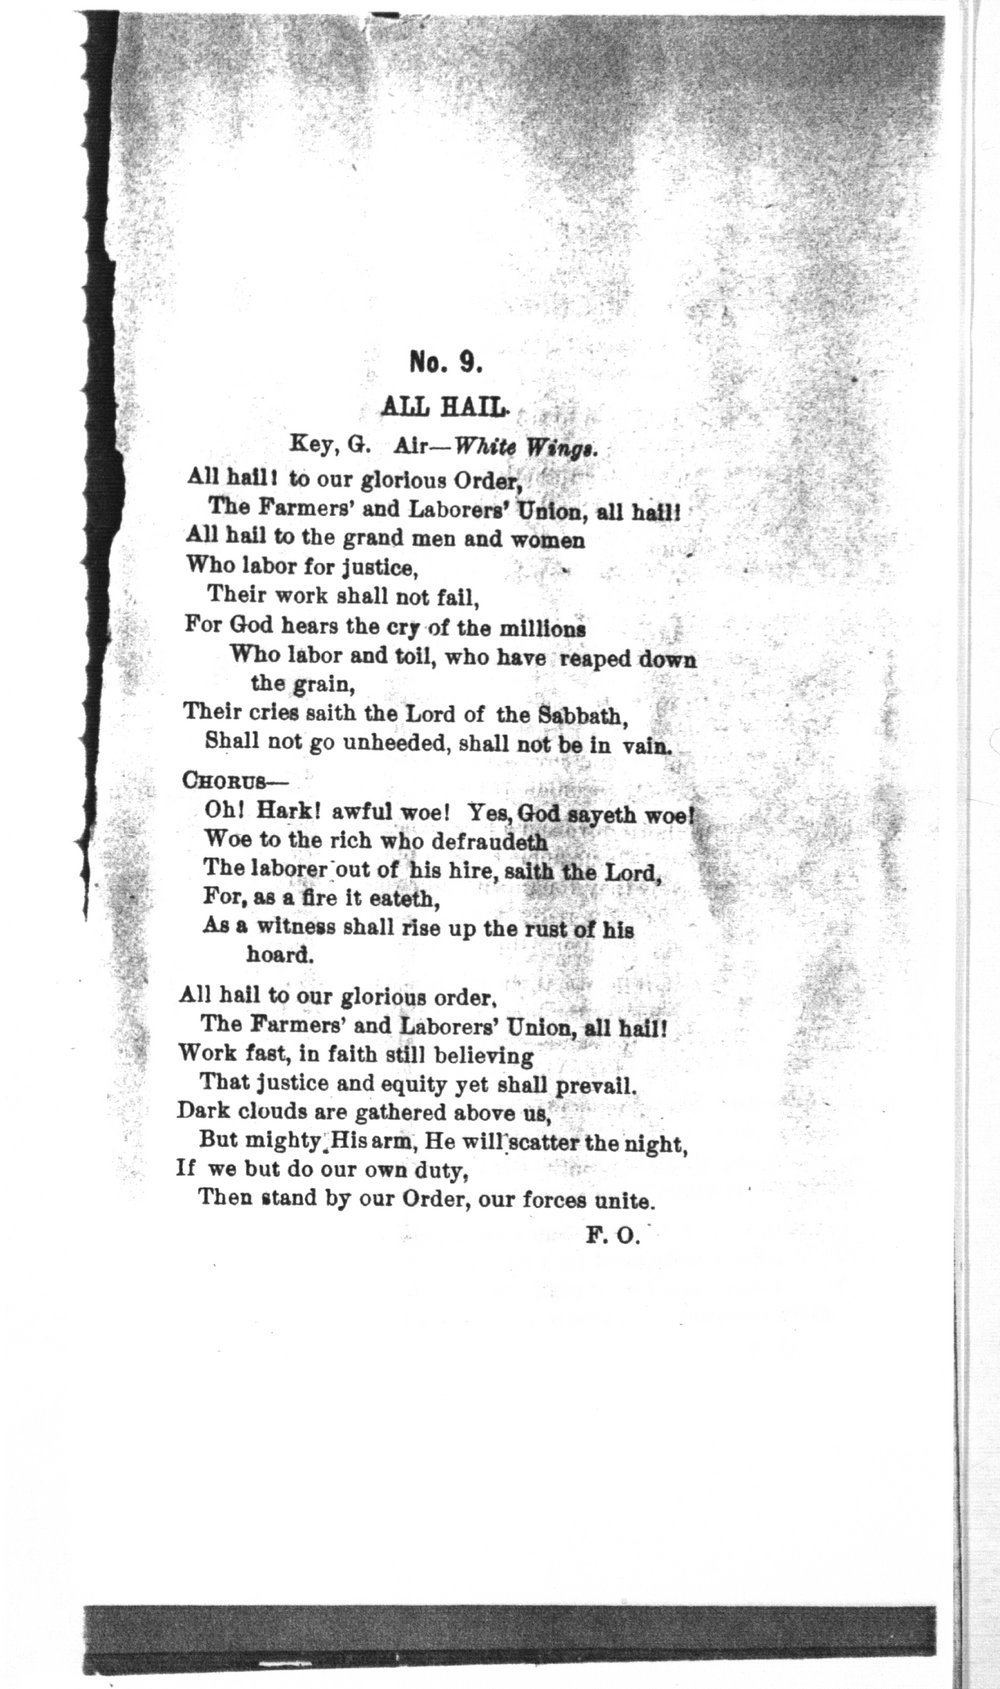 The mite:  Farmers' and Laborers' Union songs for national, state, county and subordinate unions - No. 9